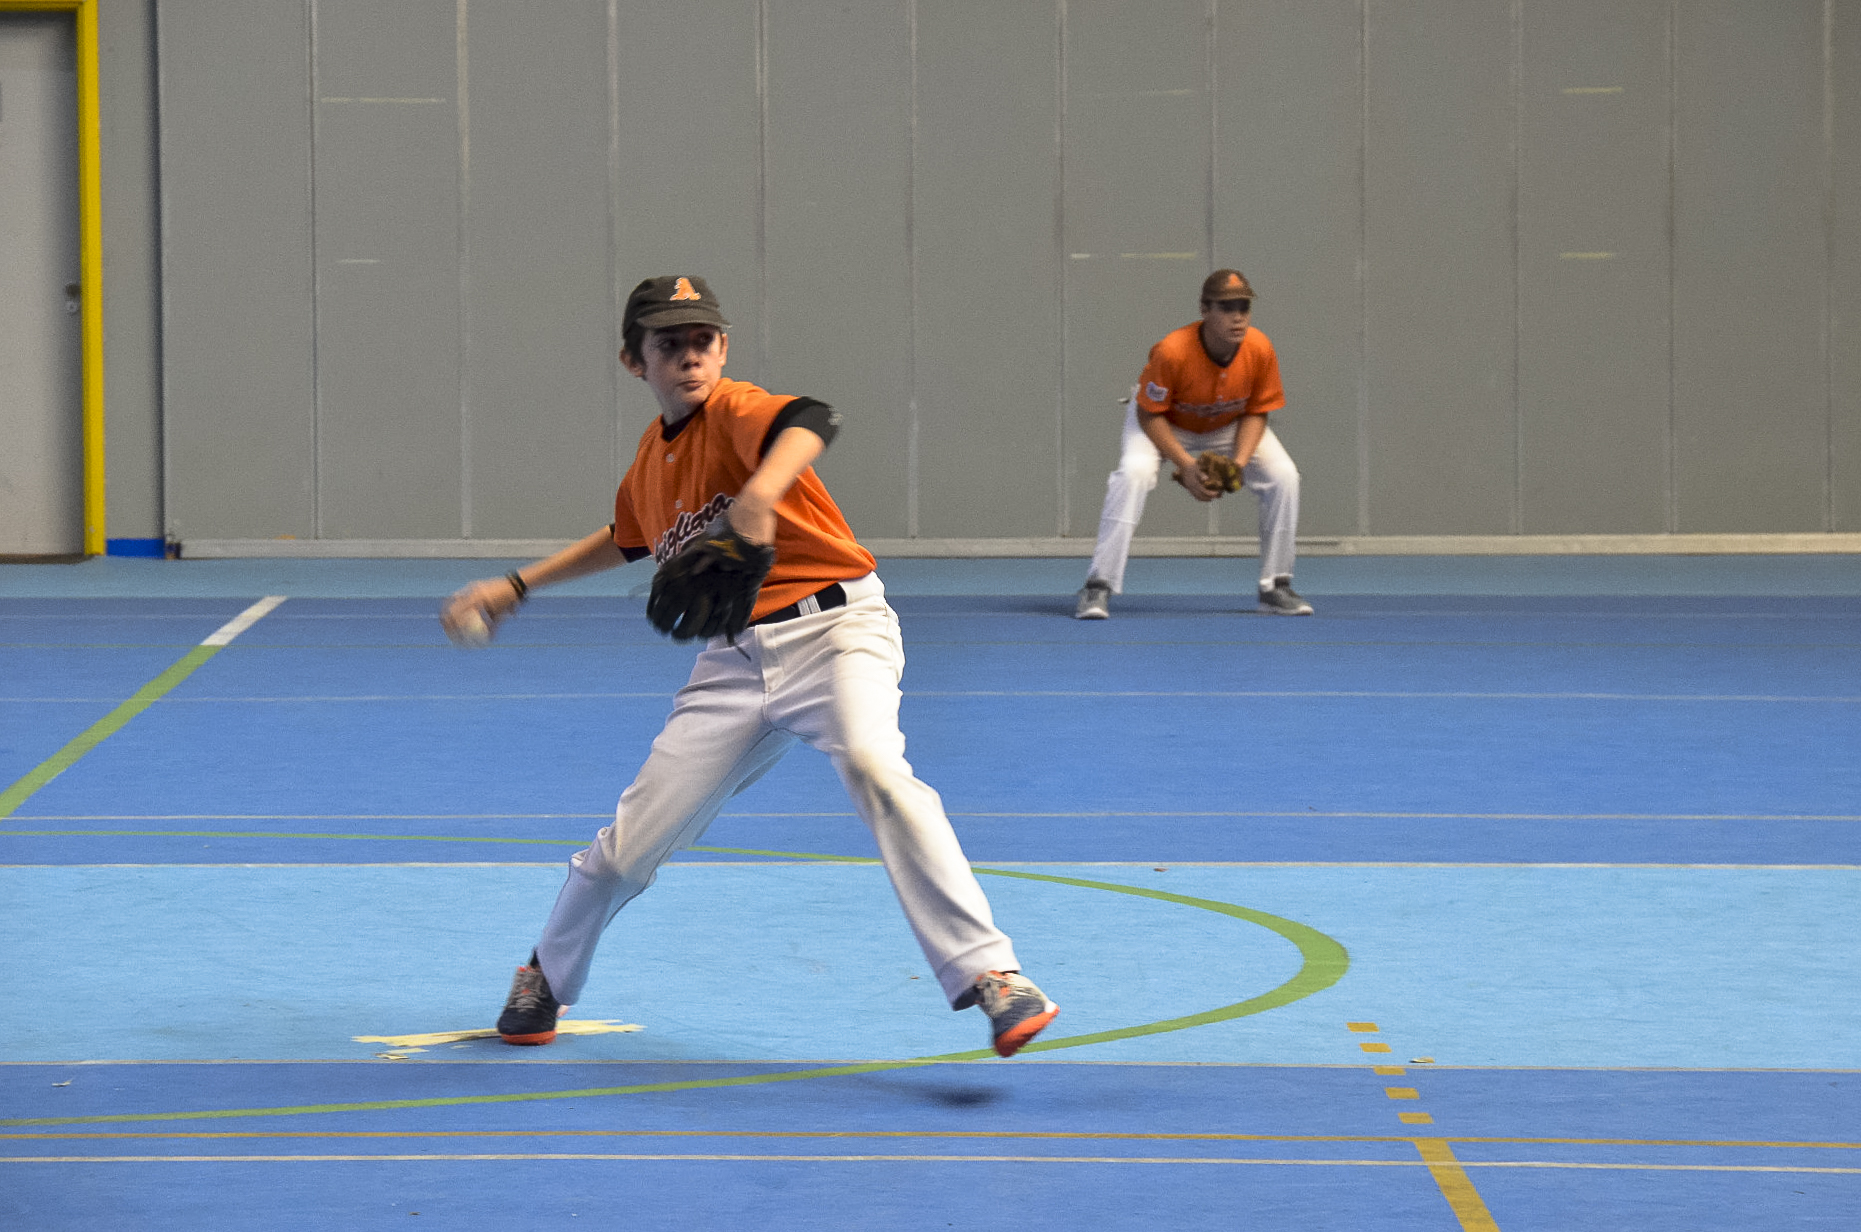 U15 baseball - Winter Ball Cup